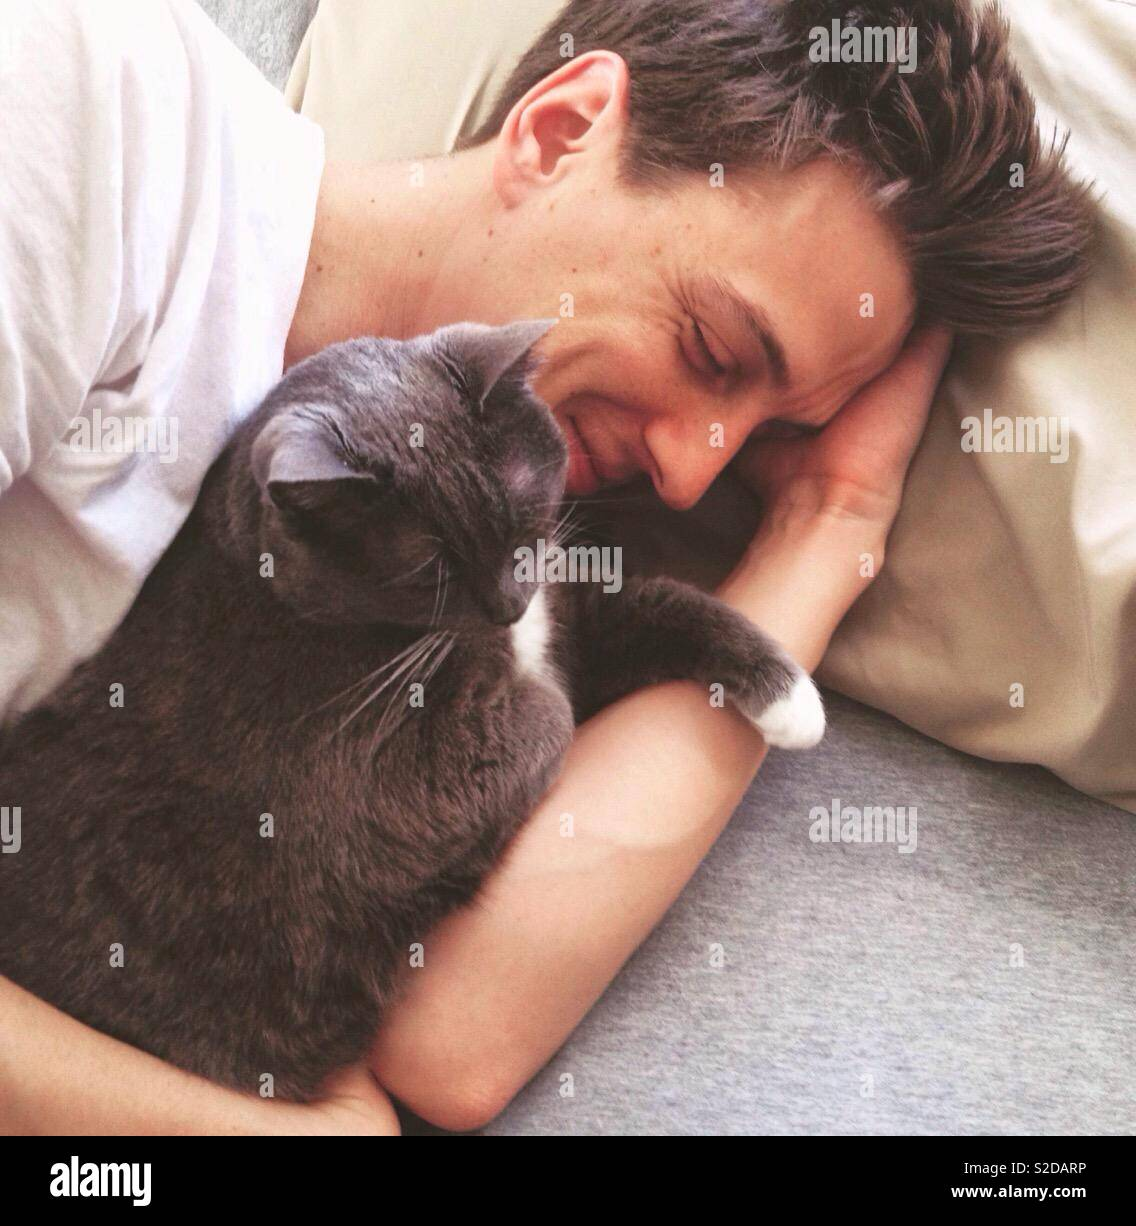 Man and cat, man with cat, cute cat - Stock Image